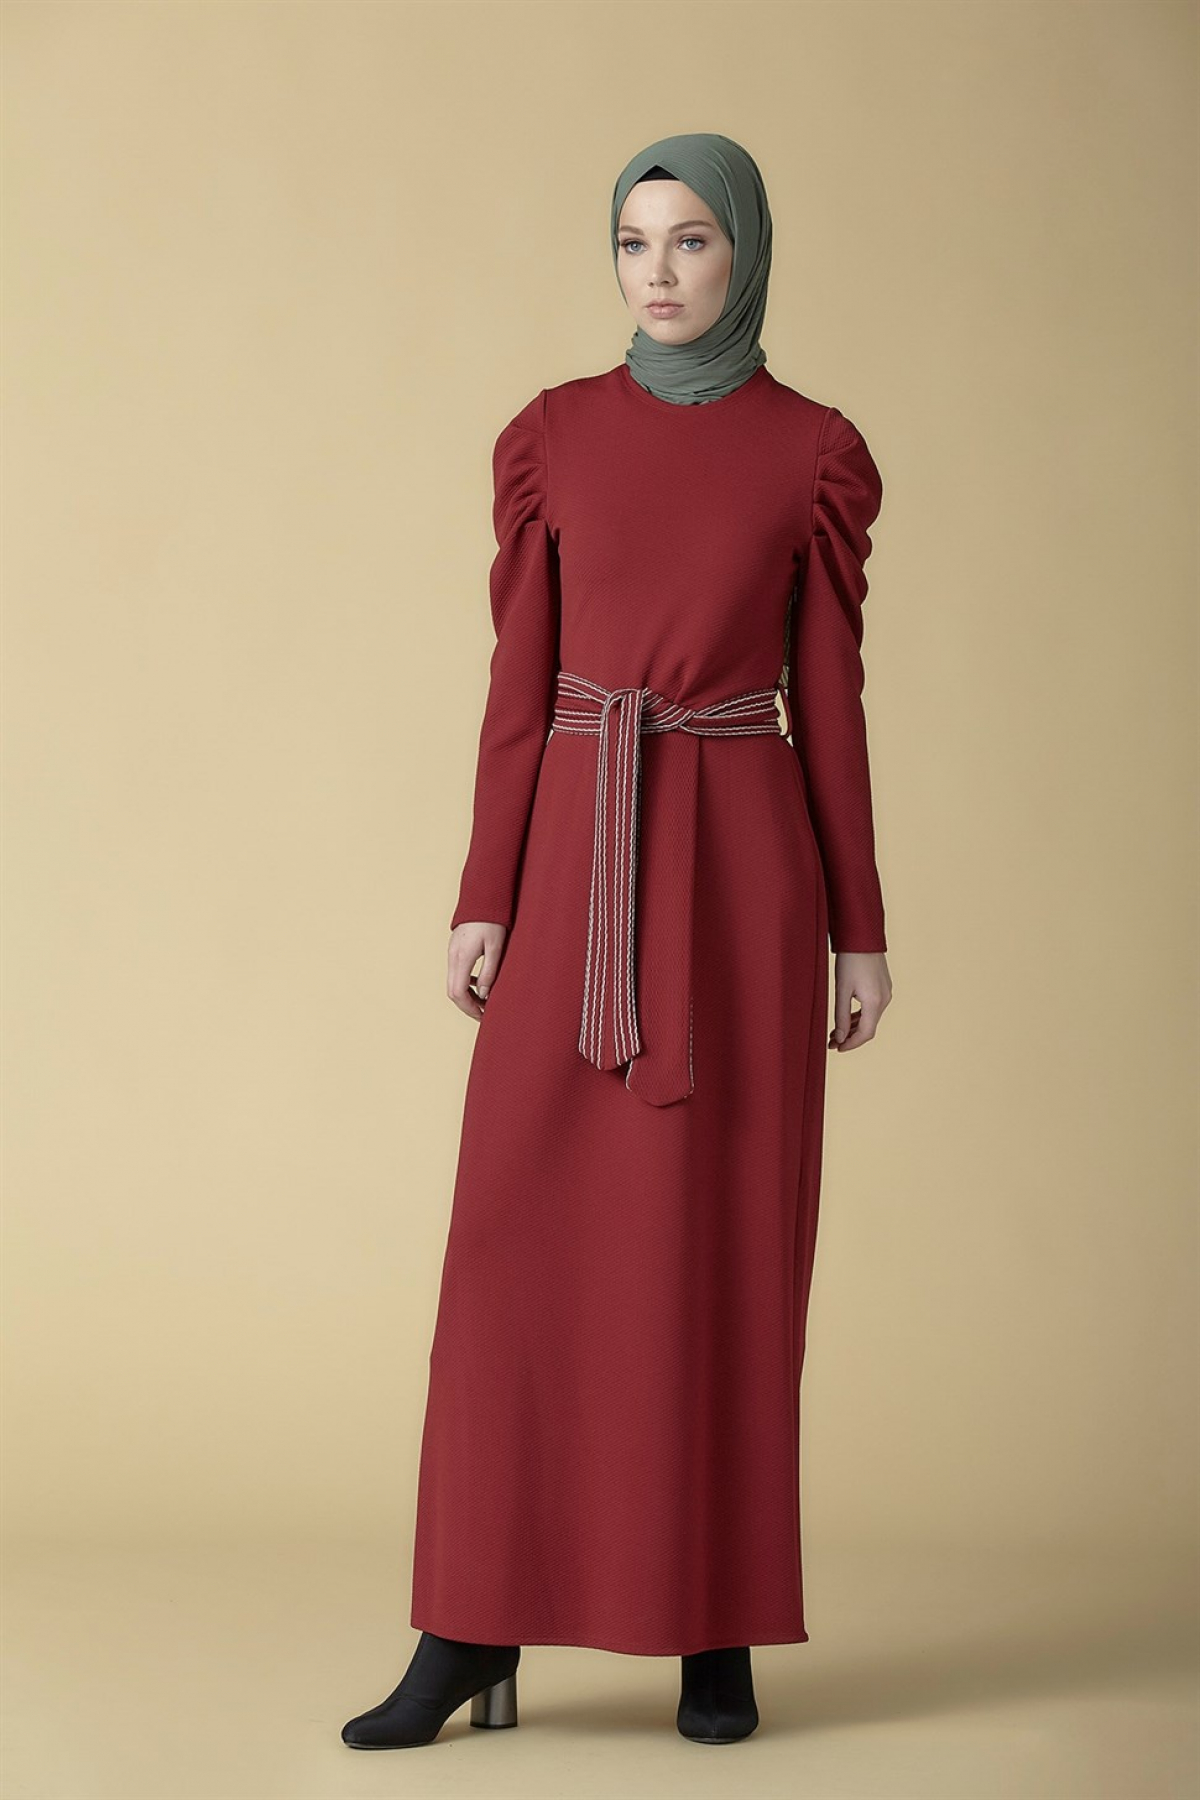 Armine Belt Detailed Women's Dress 9K9816 Claret Red